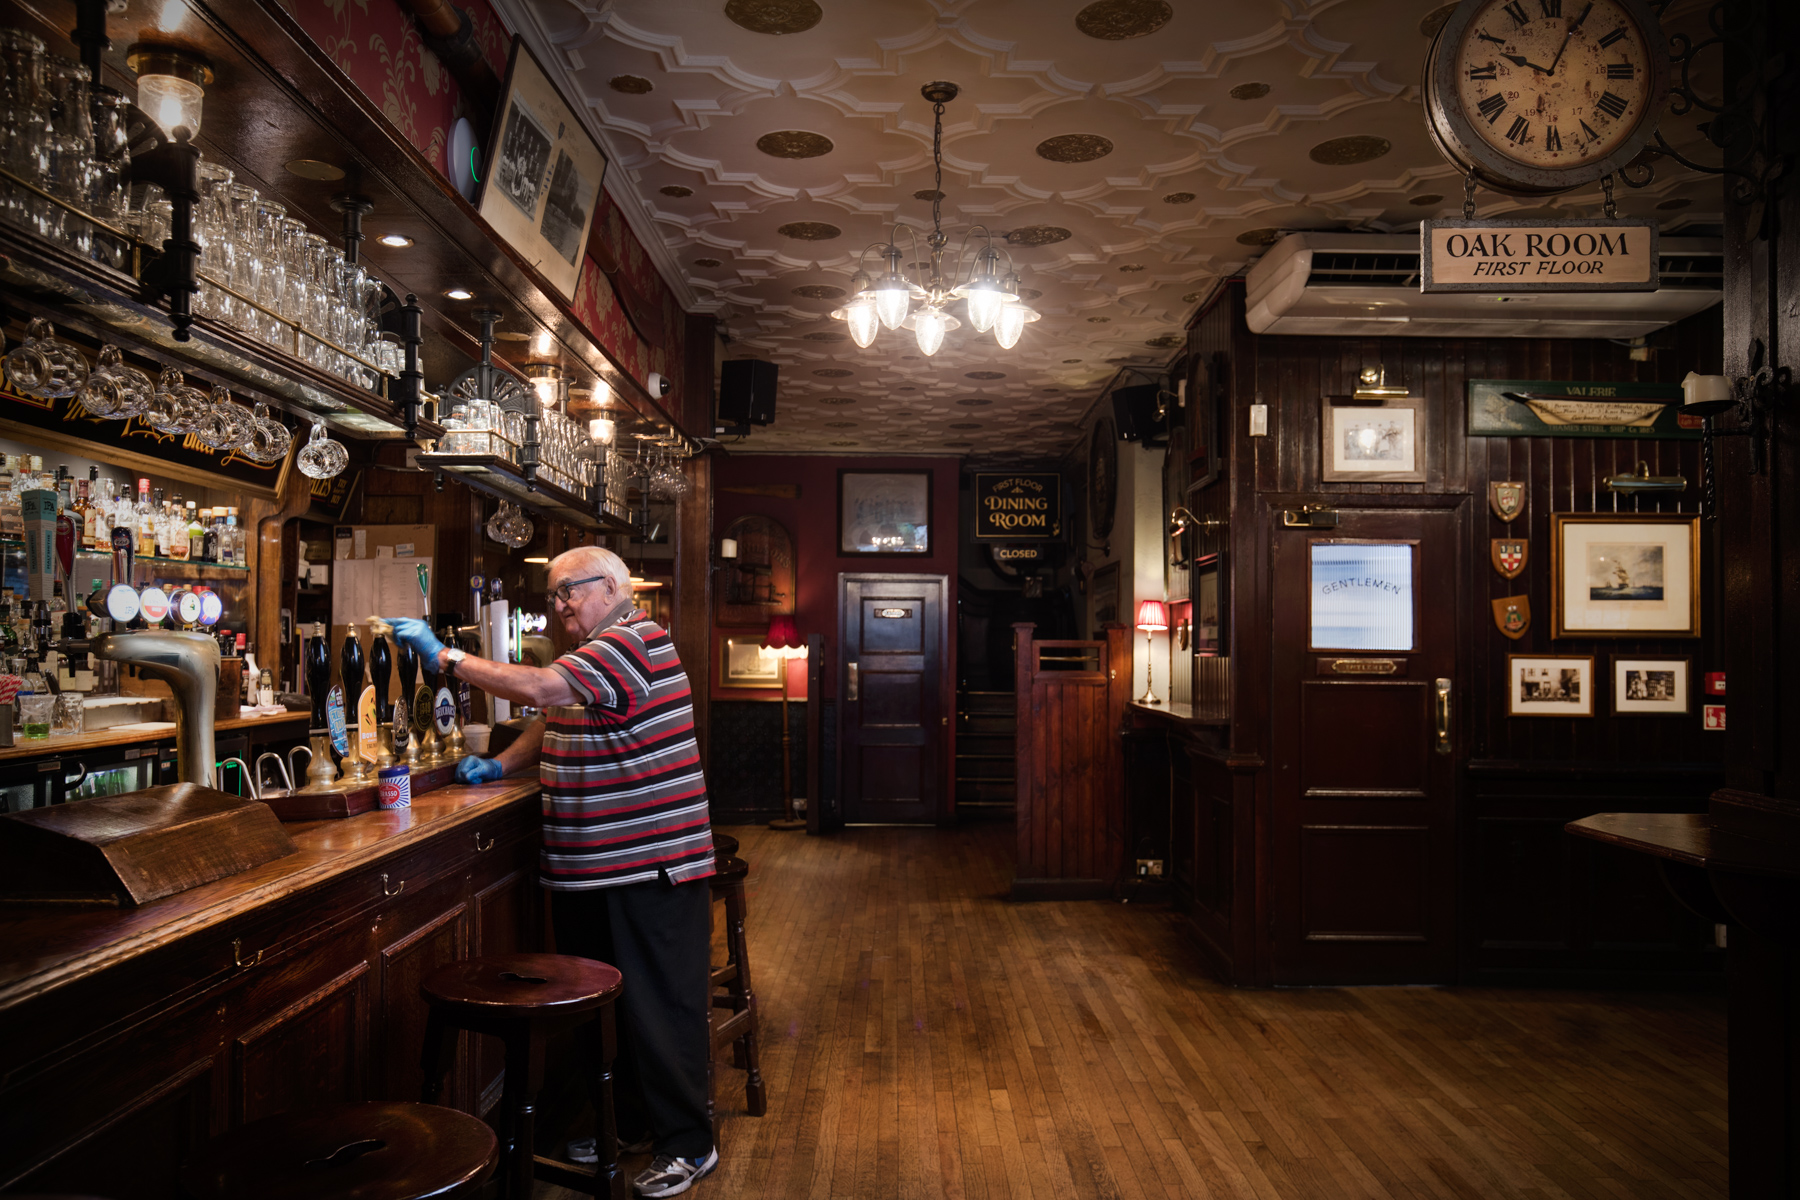 Gino has been looking after The Stafford Hotel's wine cellars for 42 years.